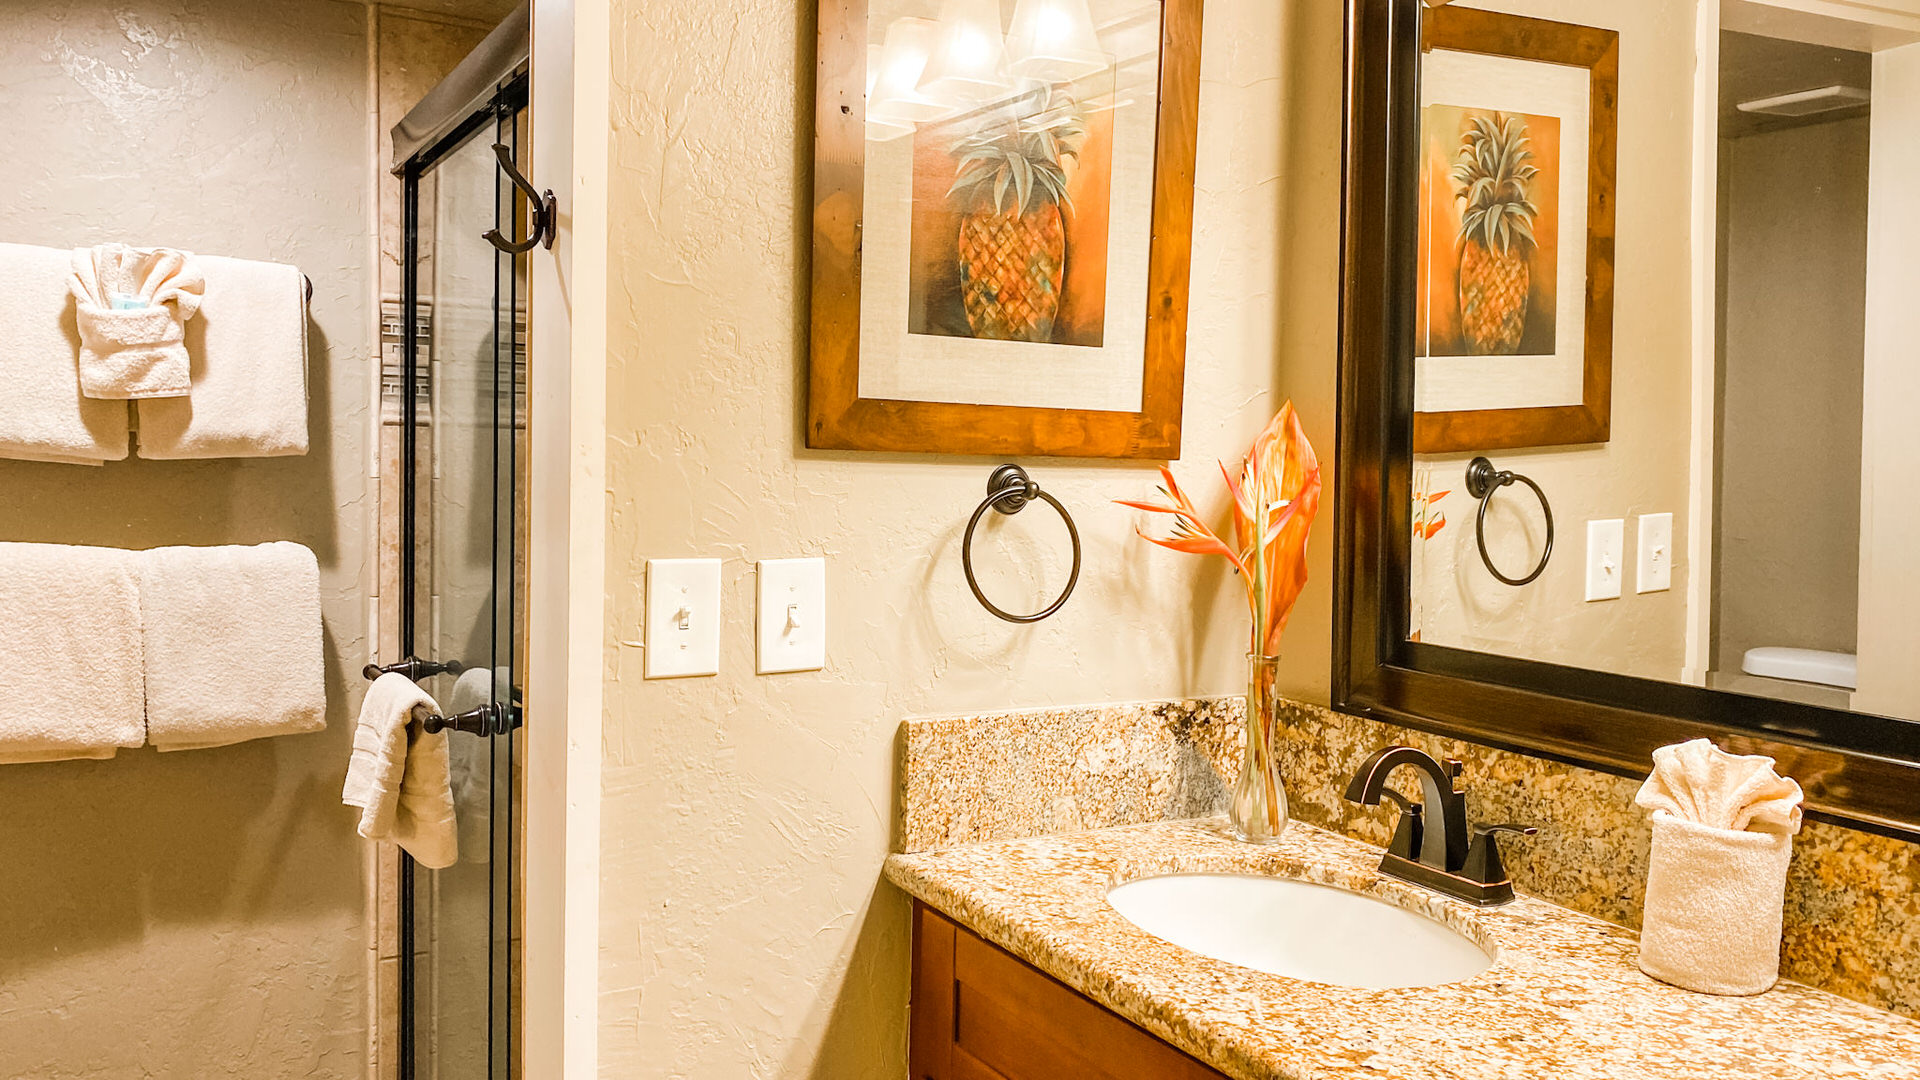 C305 Guest Bathroom Vanity and Shower